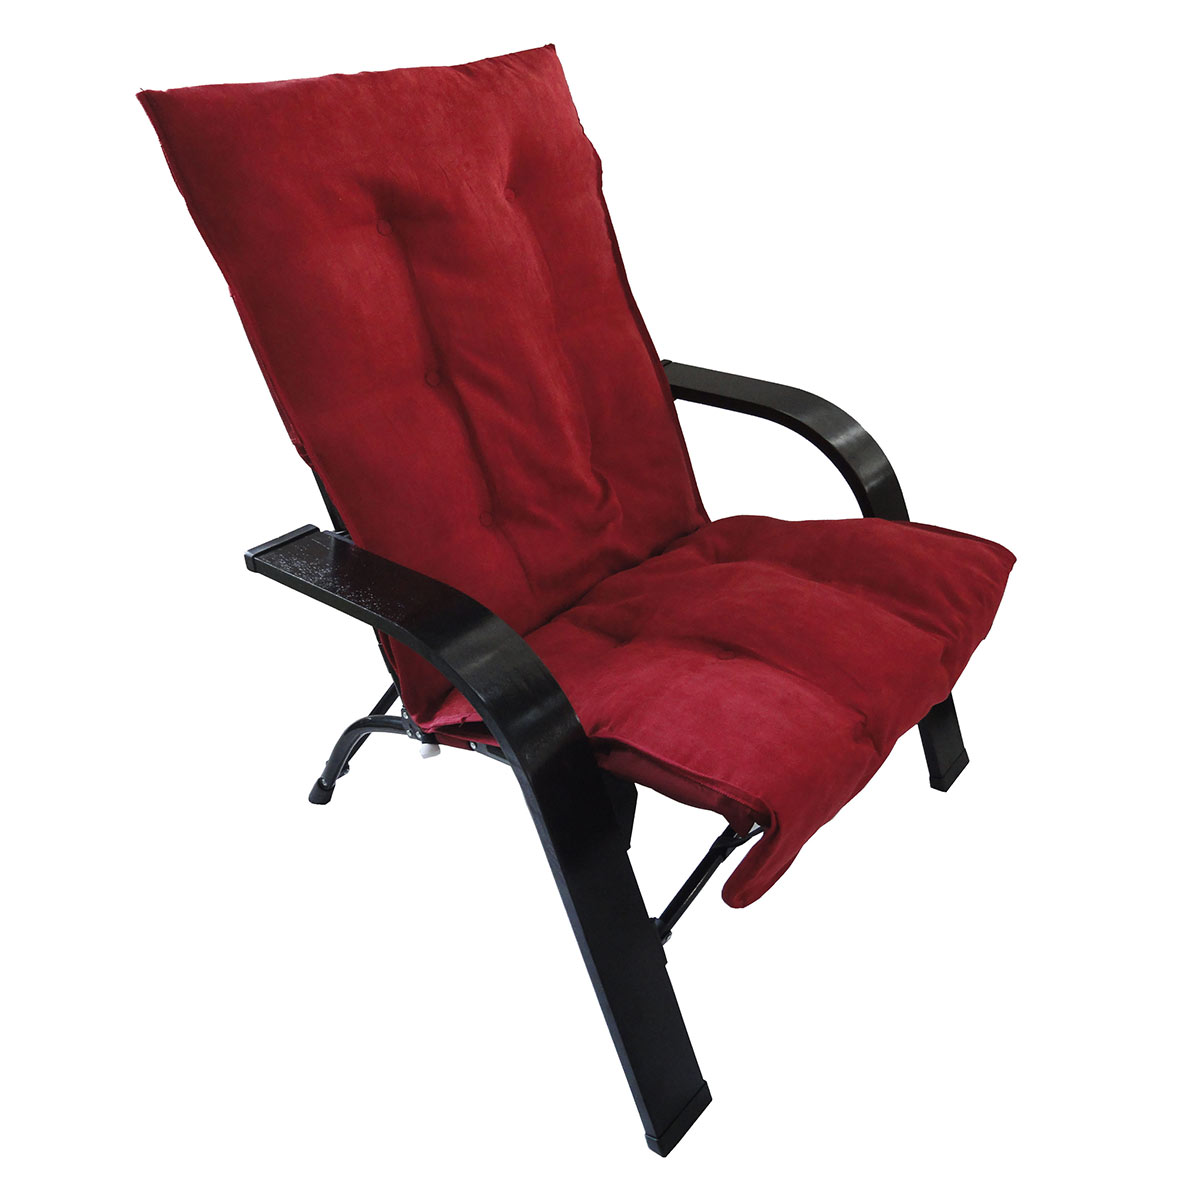 banquet chairs with arms red bungee chair international caravan folding wooden free